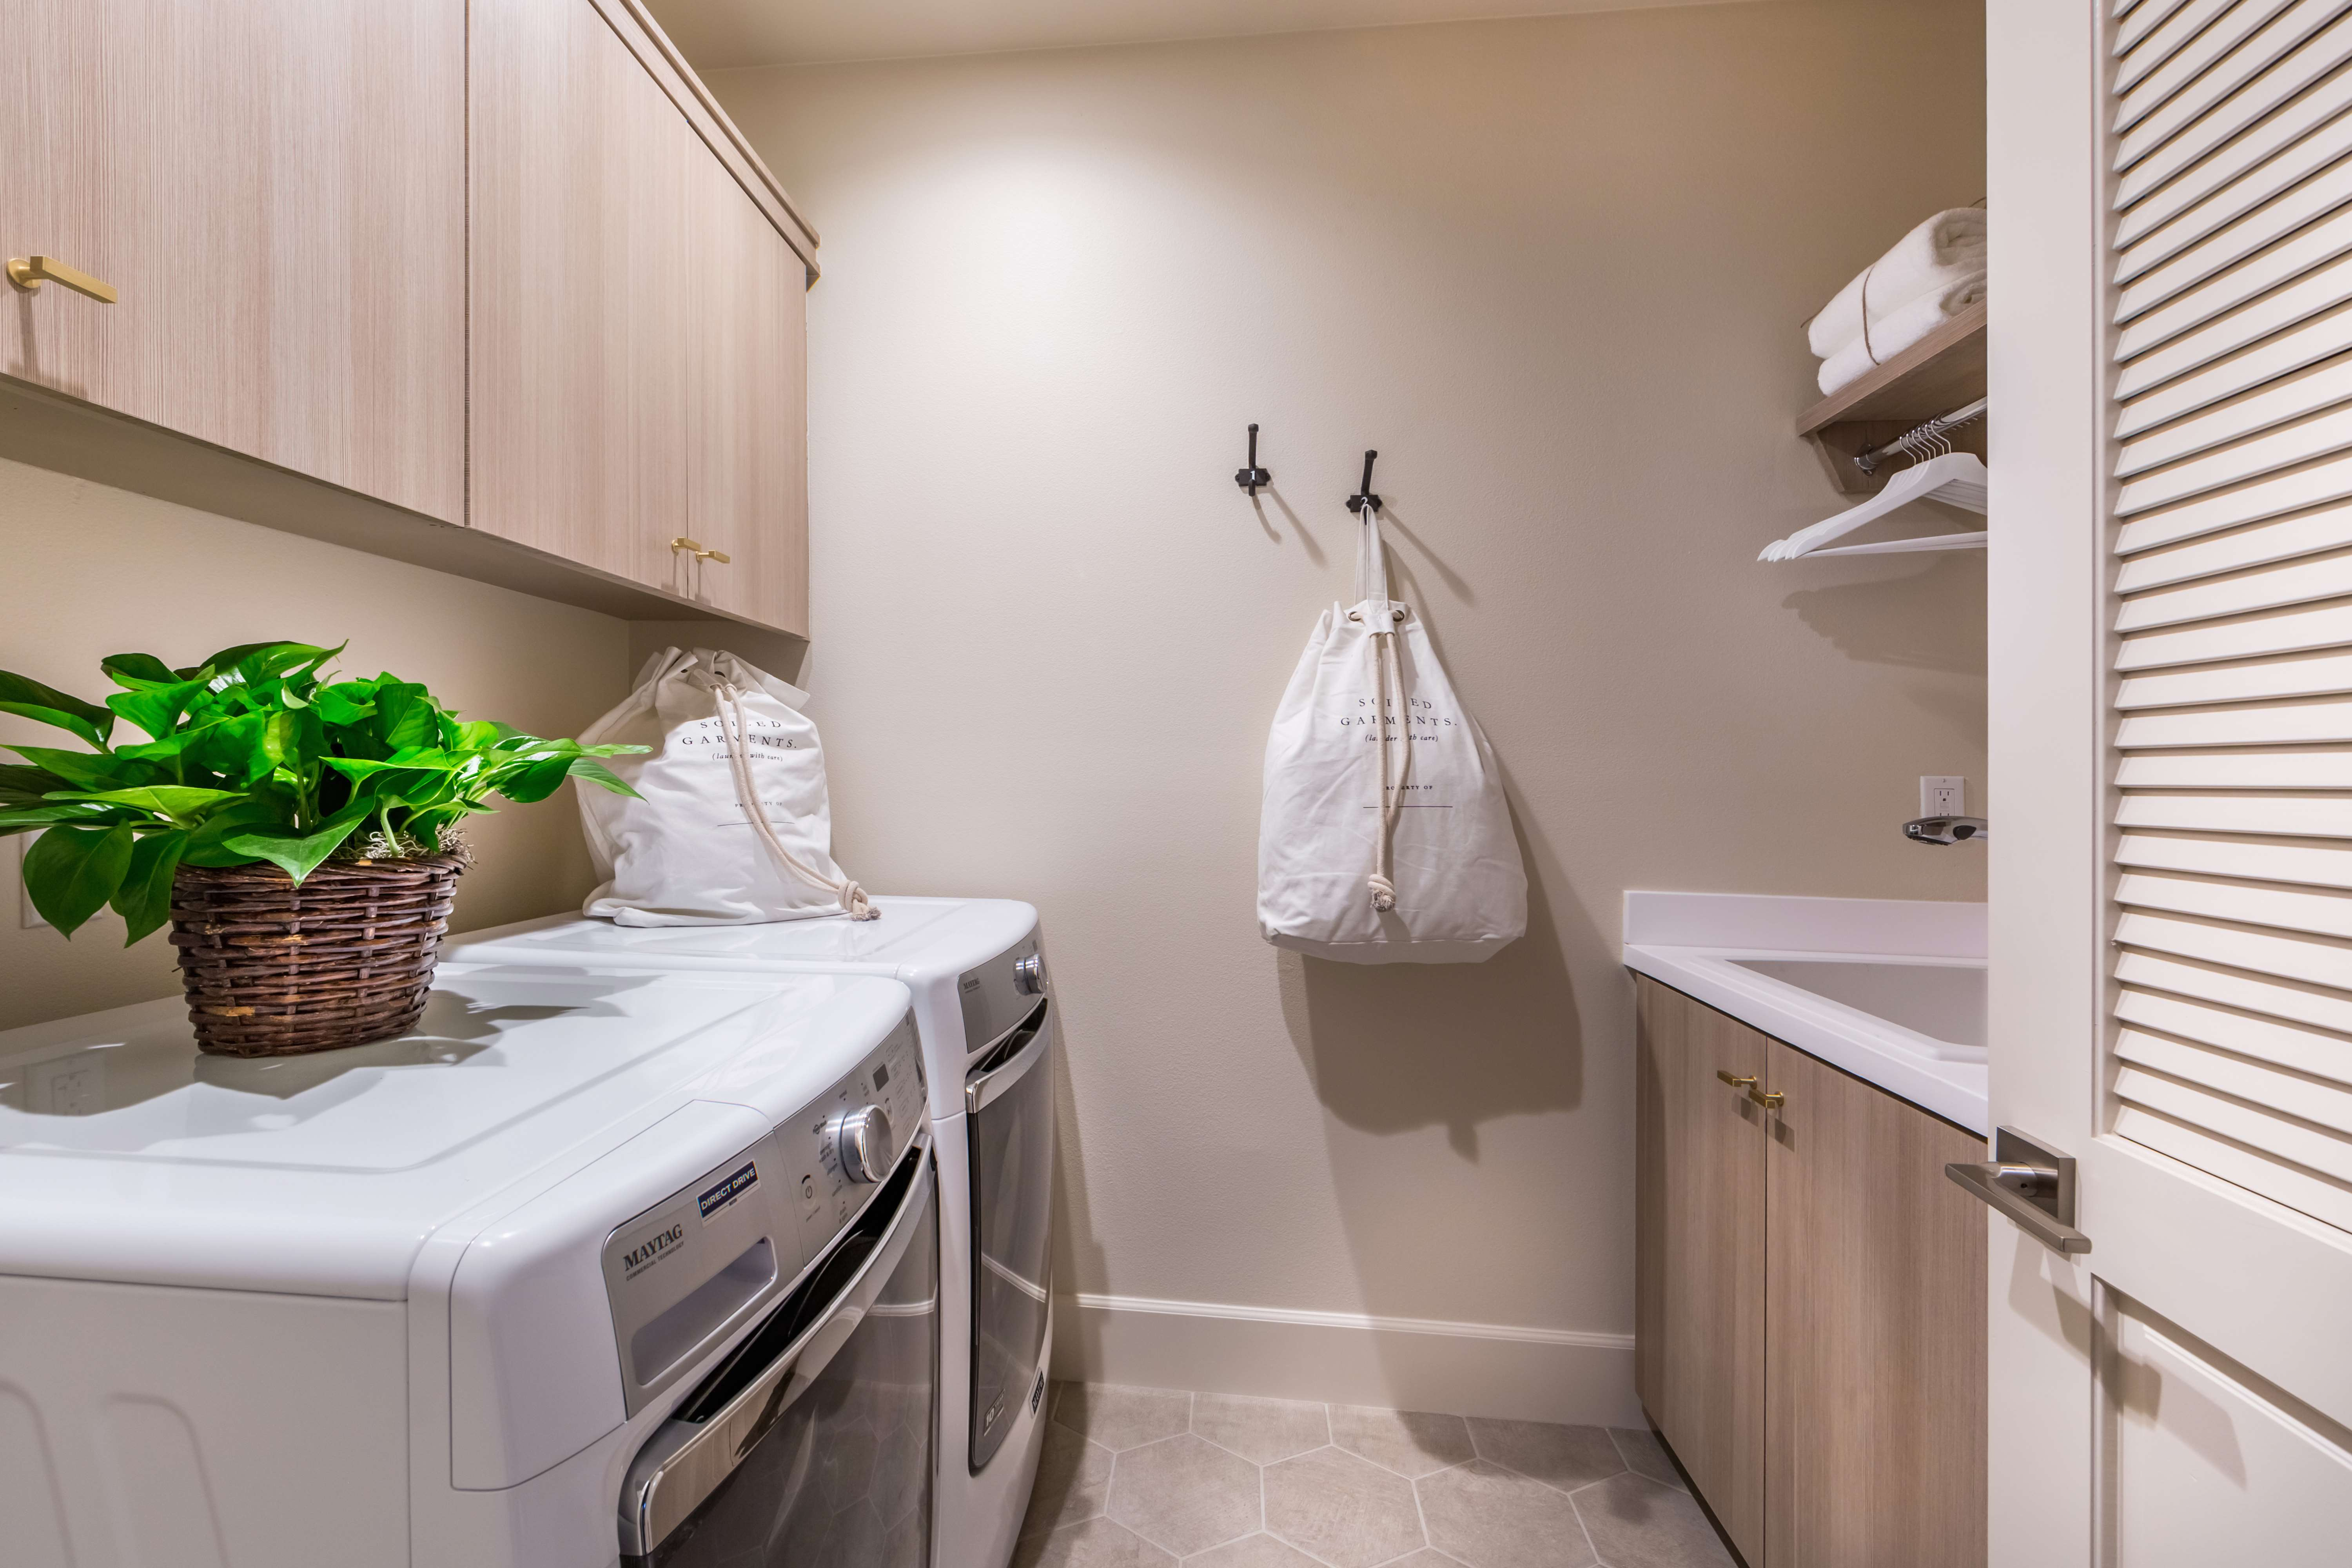 Laundry Room at Terra Residence 1 in Irvine